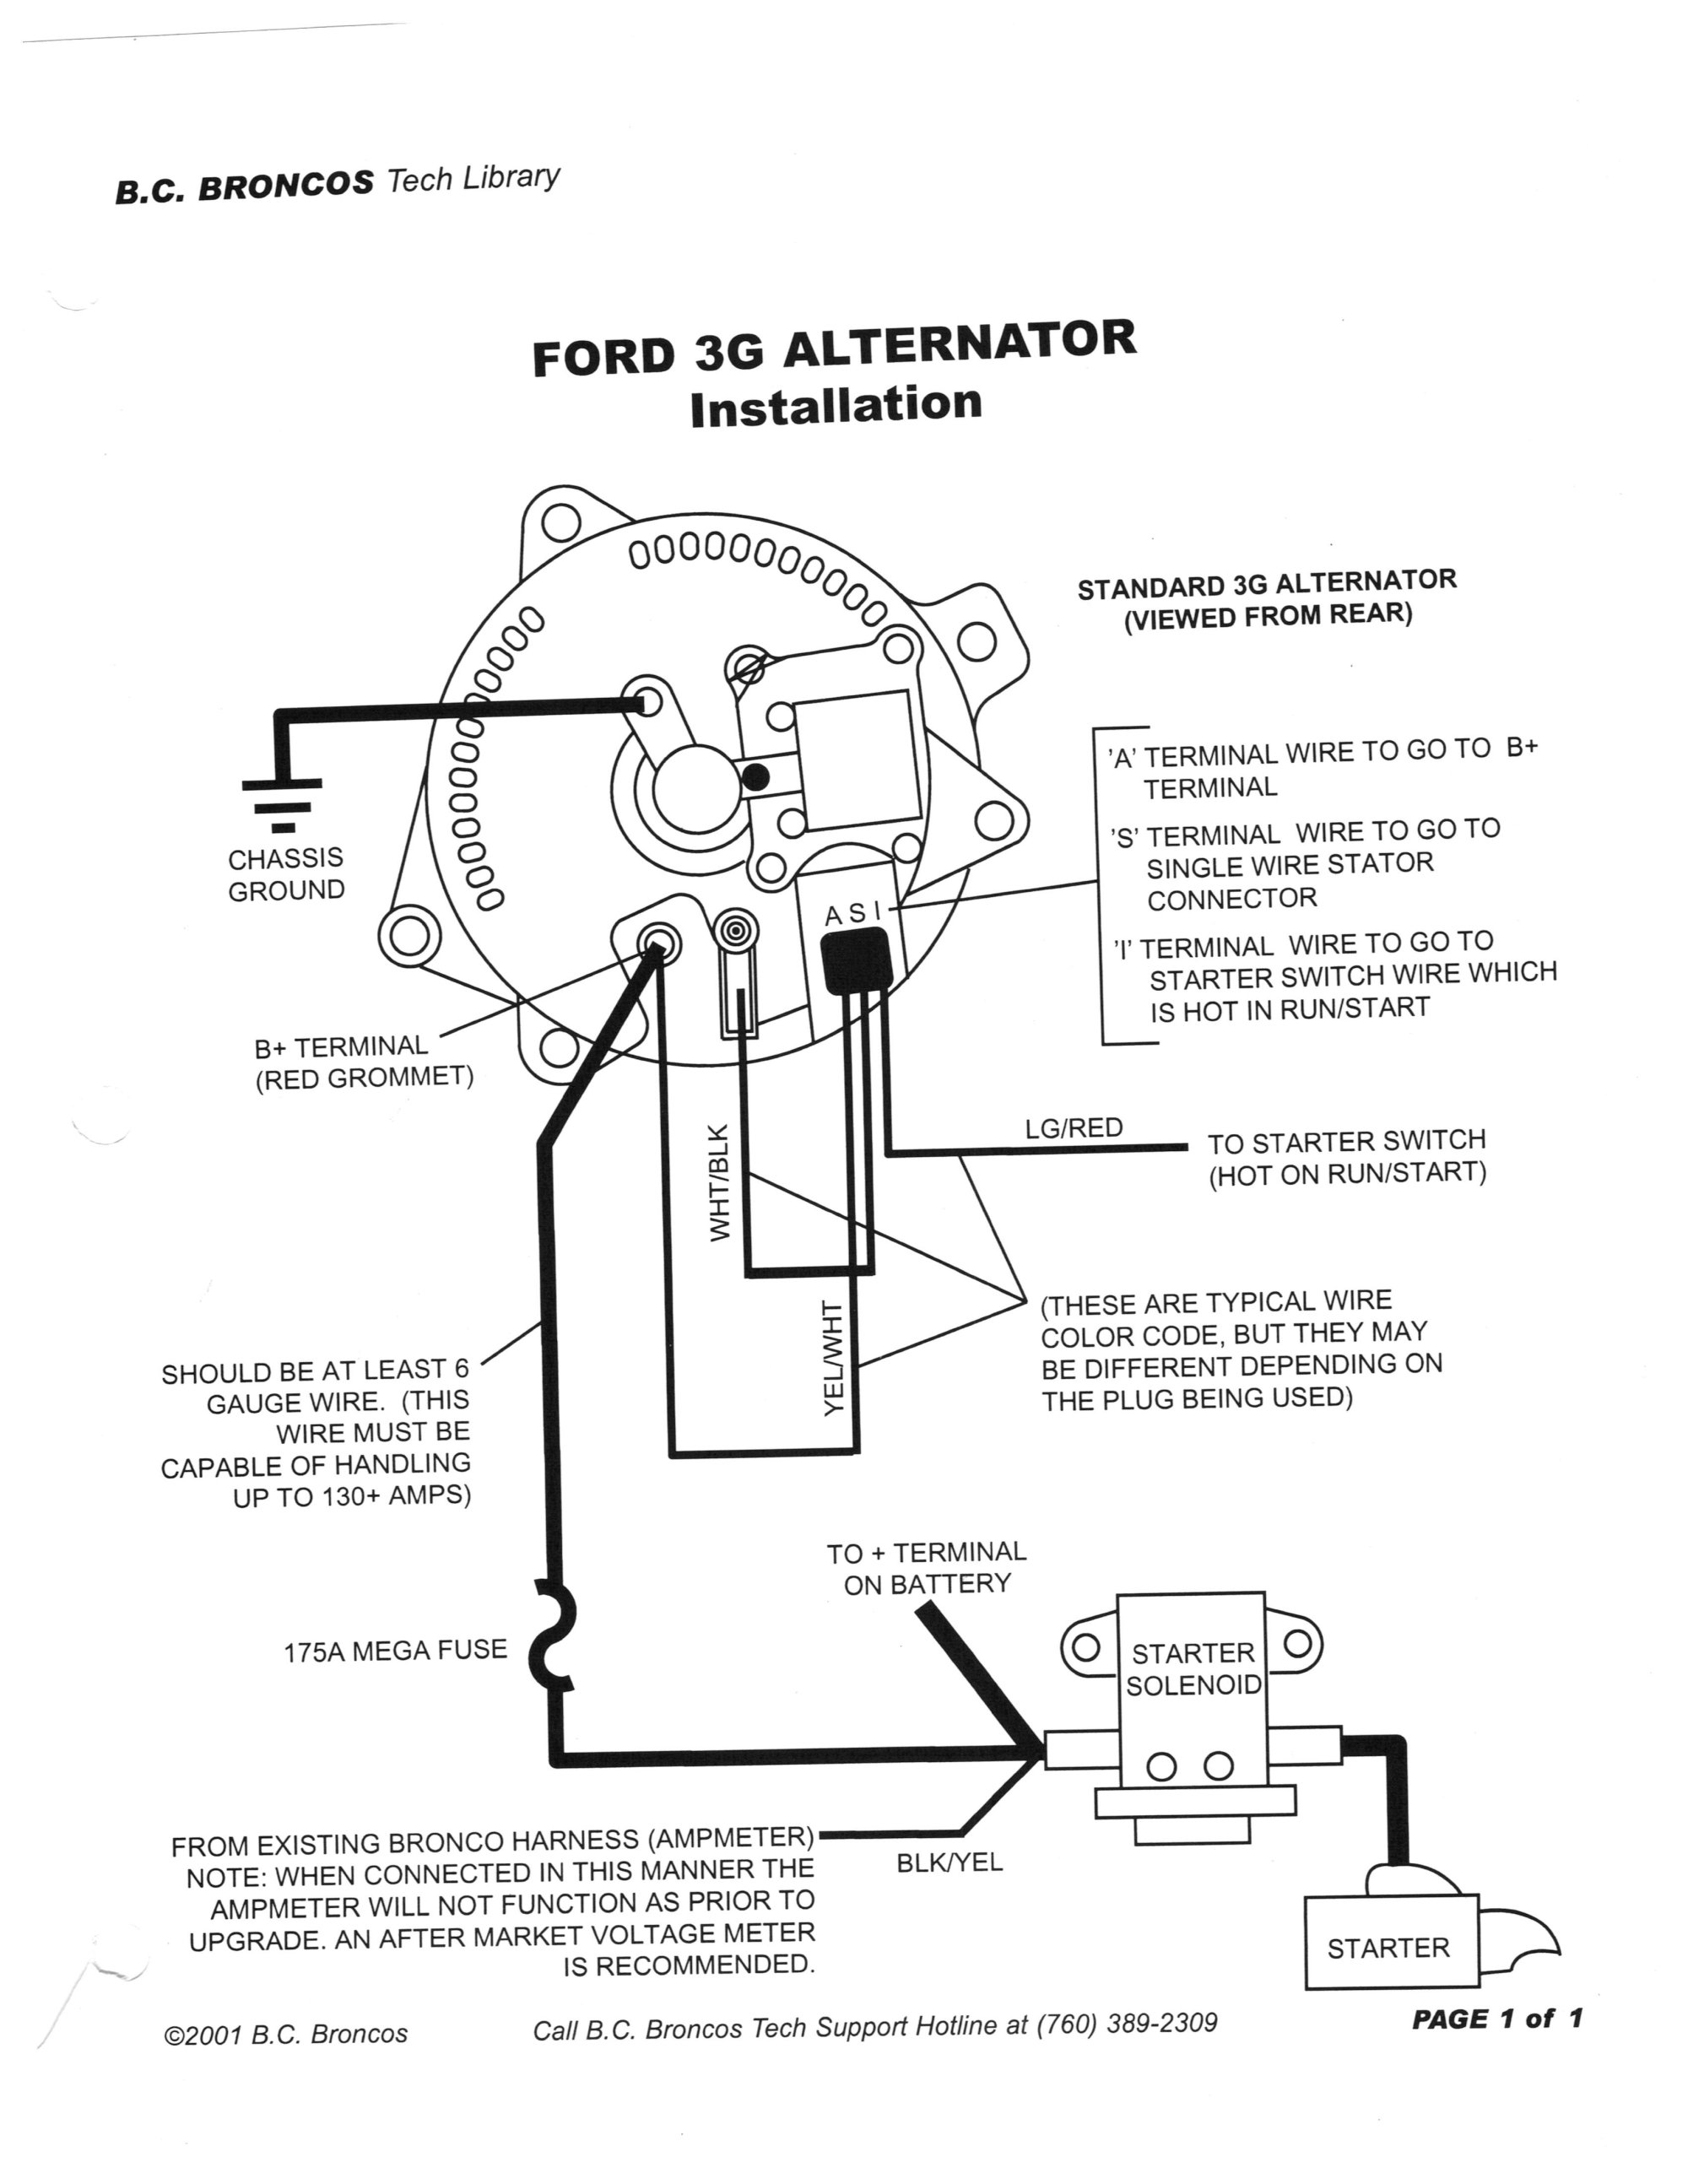 hight resolution of 93 ford mustang alternator wiring diagram free picture wiring 1969 ford mustang alternator wiring diagram 93